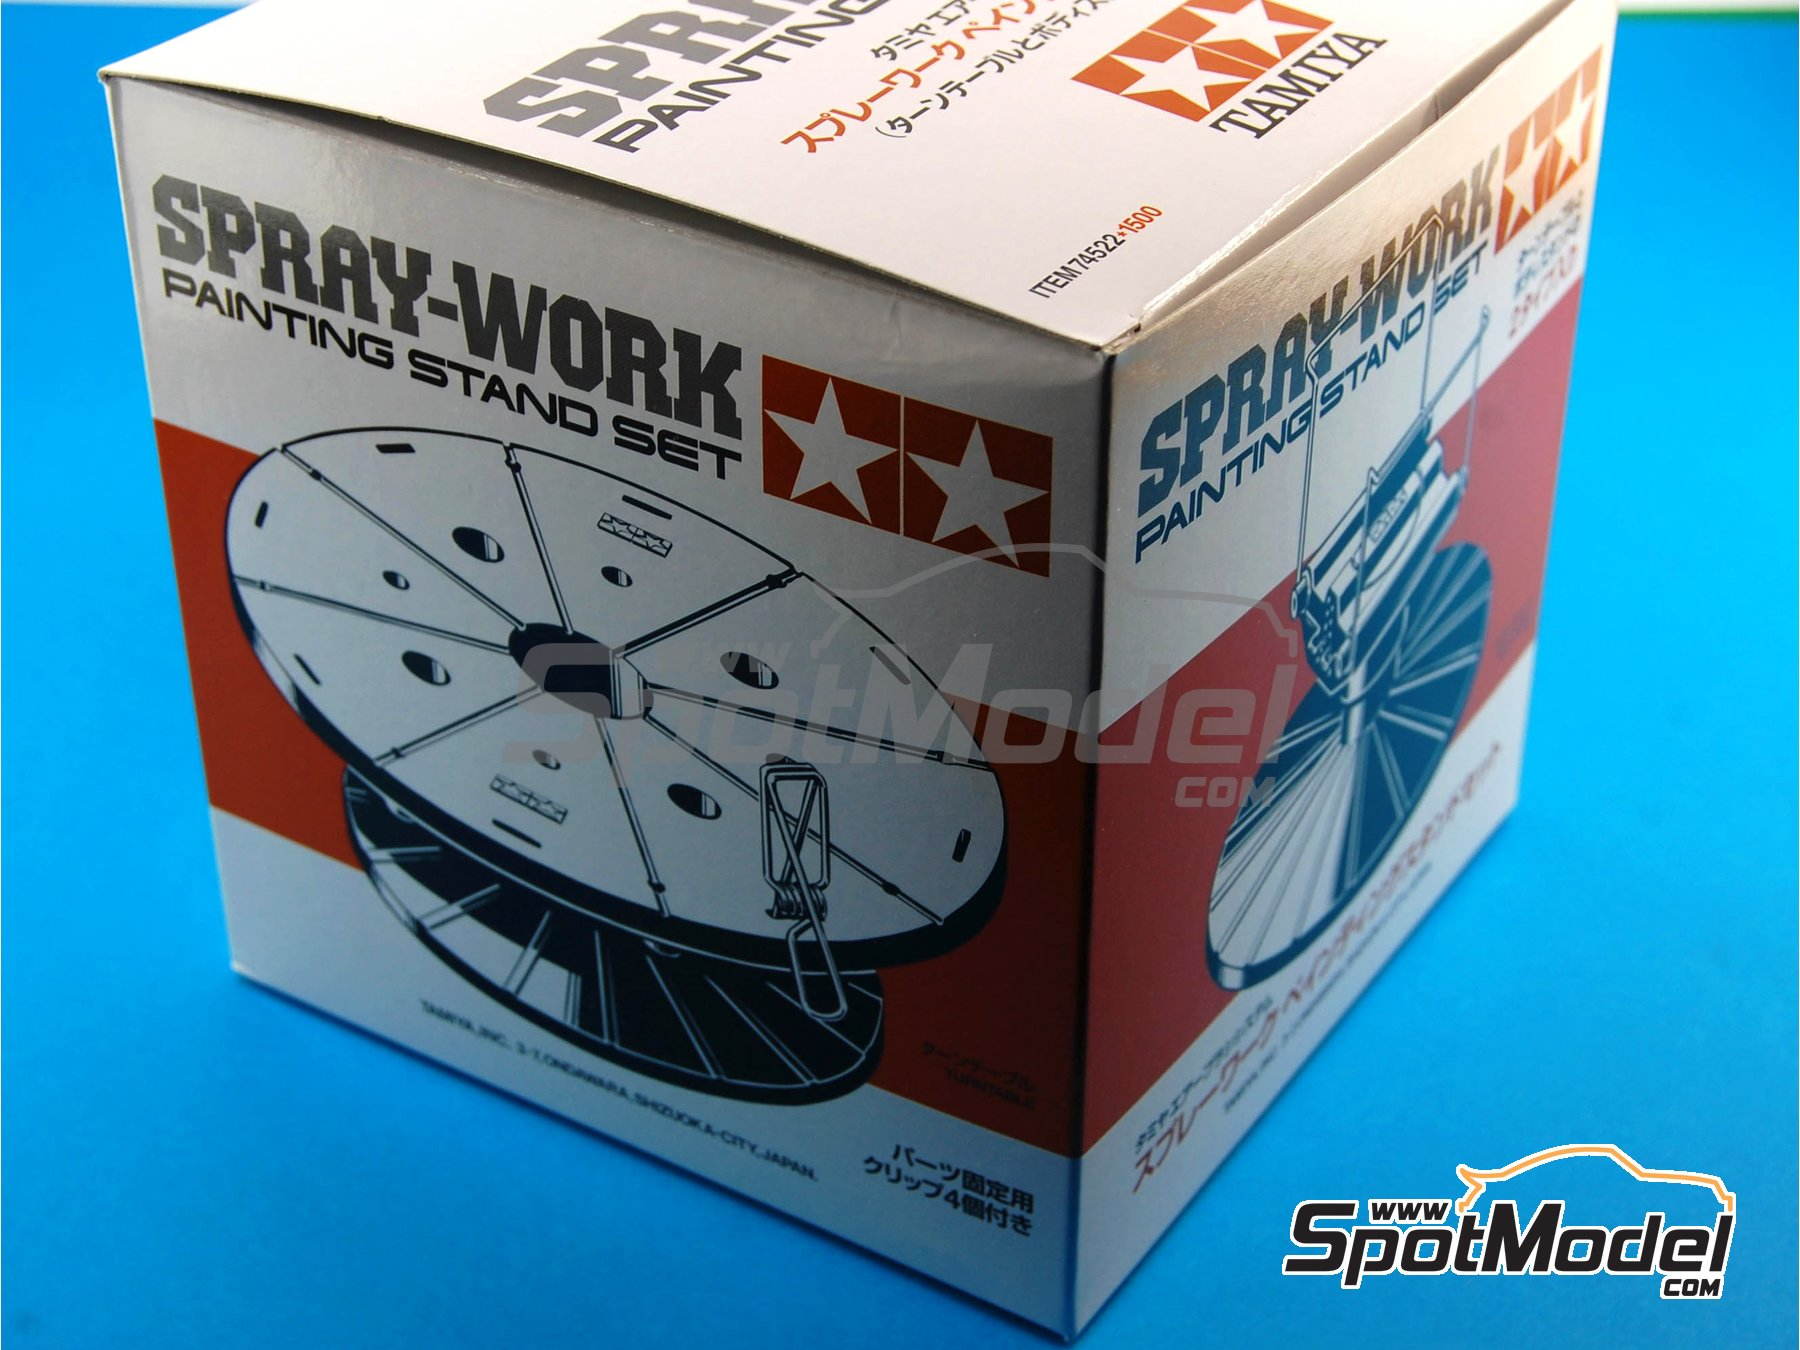 Image 1: Spray-Work painting stand set | Tools manufactured by Tamiya (ref. TAM74522)